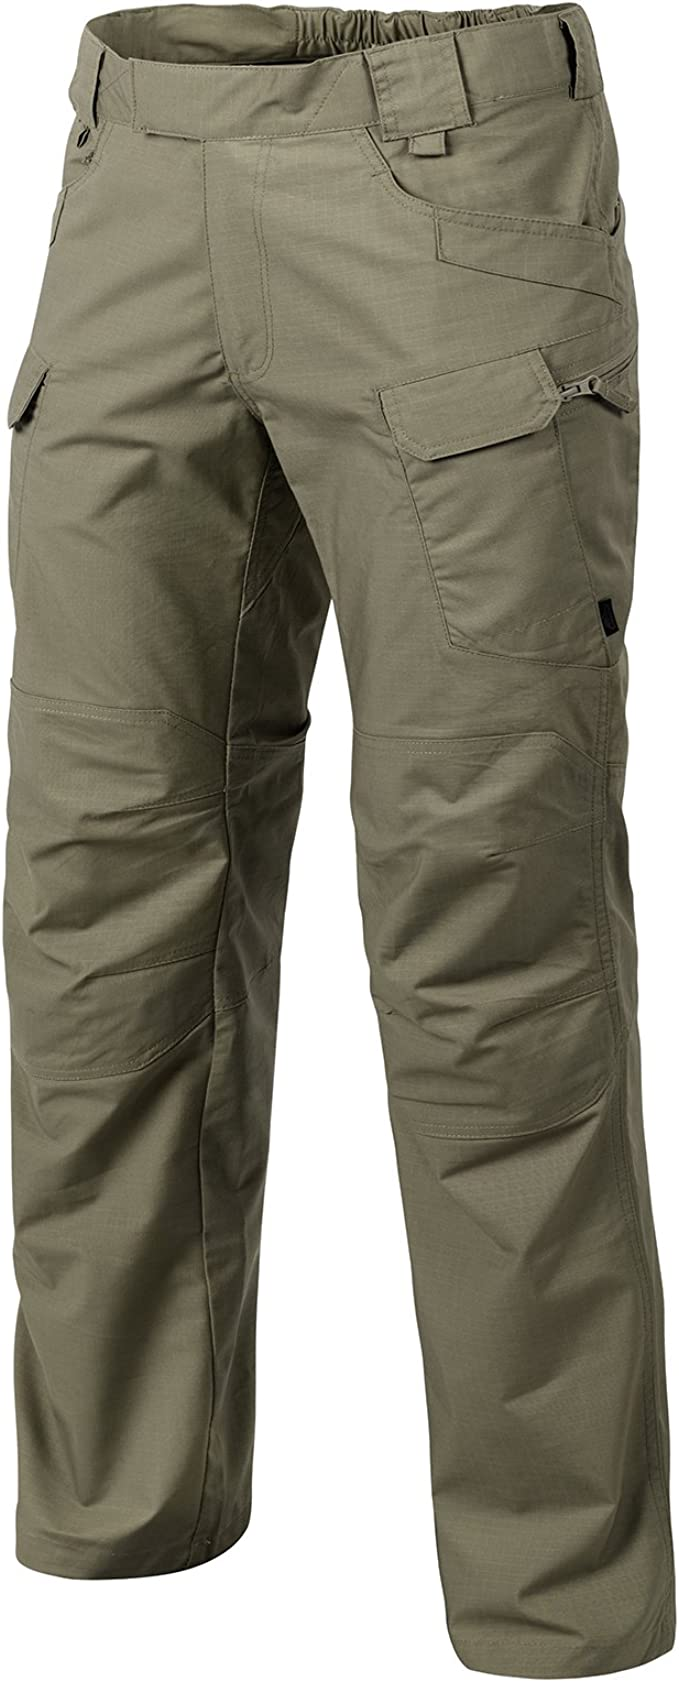 This is an image of the Helikon-Tex Men UTP Urban Tactical Pants in Military Cargo Style